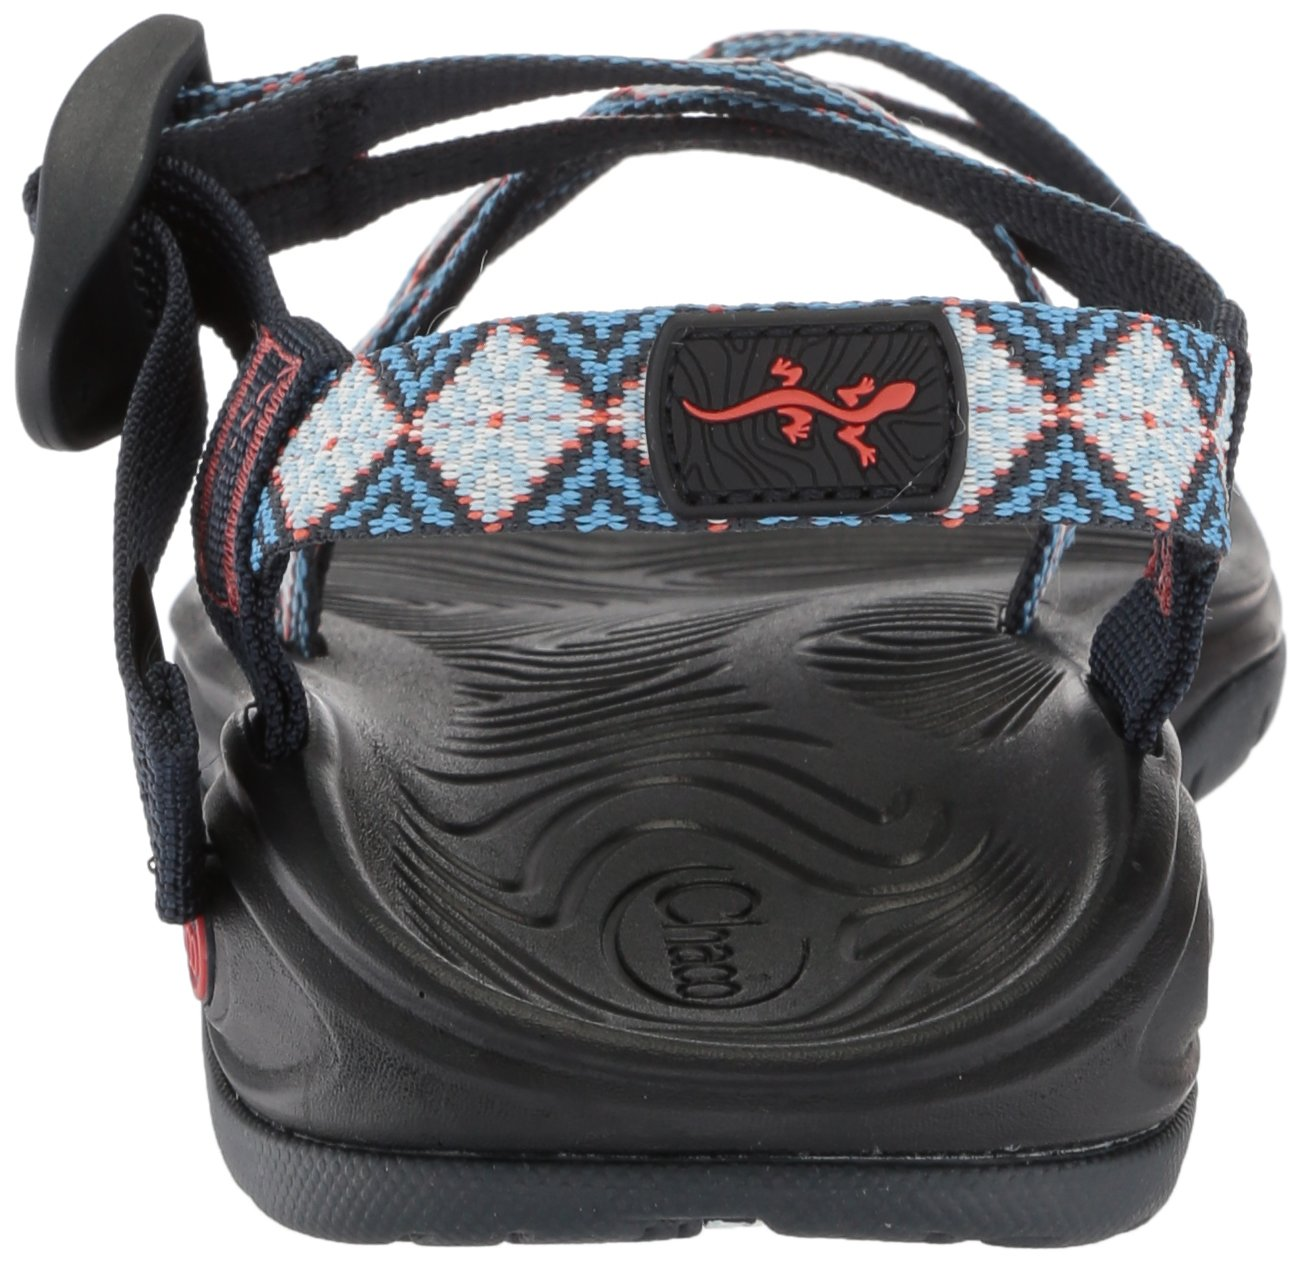 Chaco Women's Zvolv X Athletic US|Kaleido Sandal B071GMQBXD 11 B(M) US|Kaleido Athletic Eclipse 1b5602